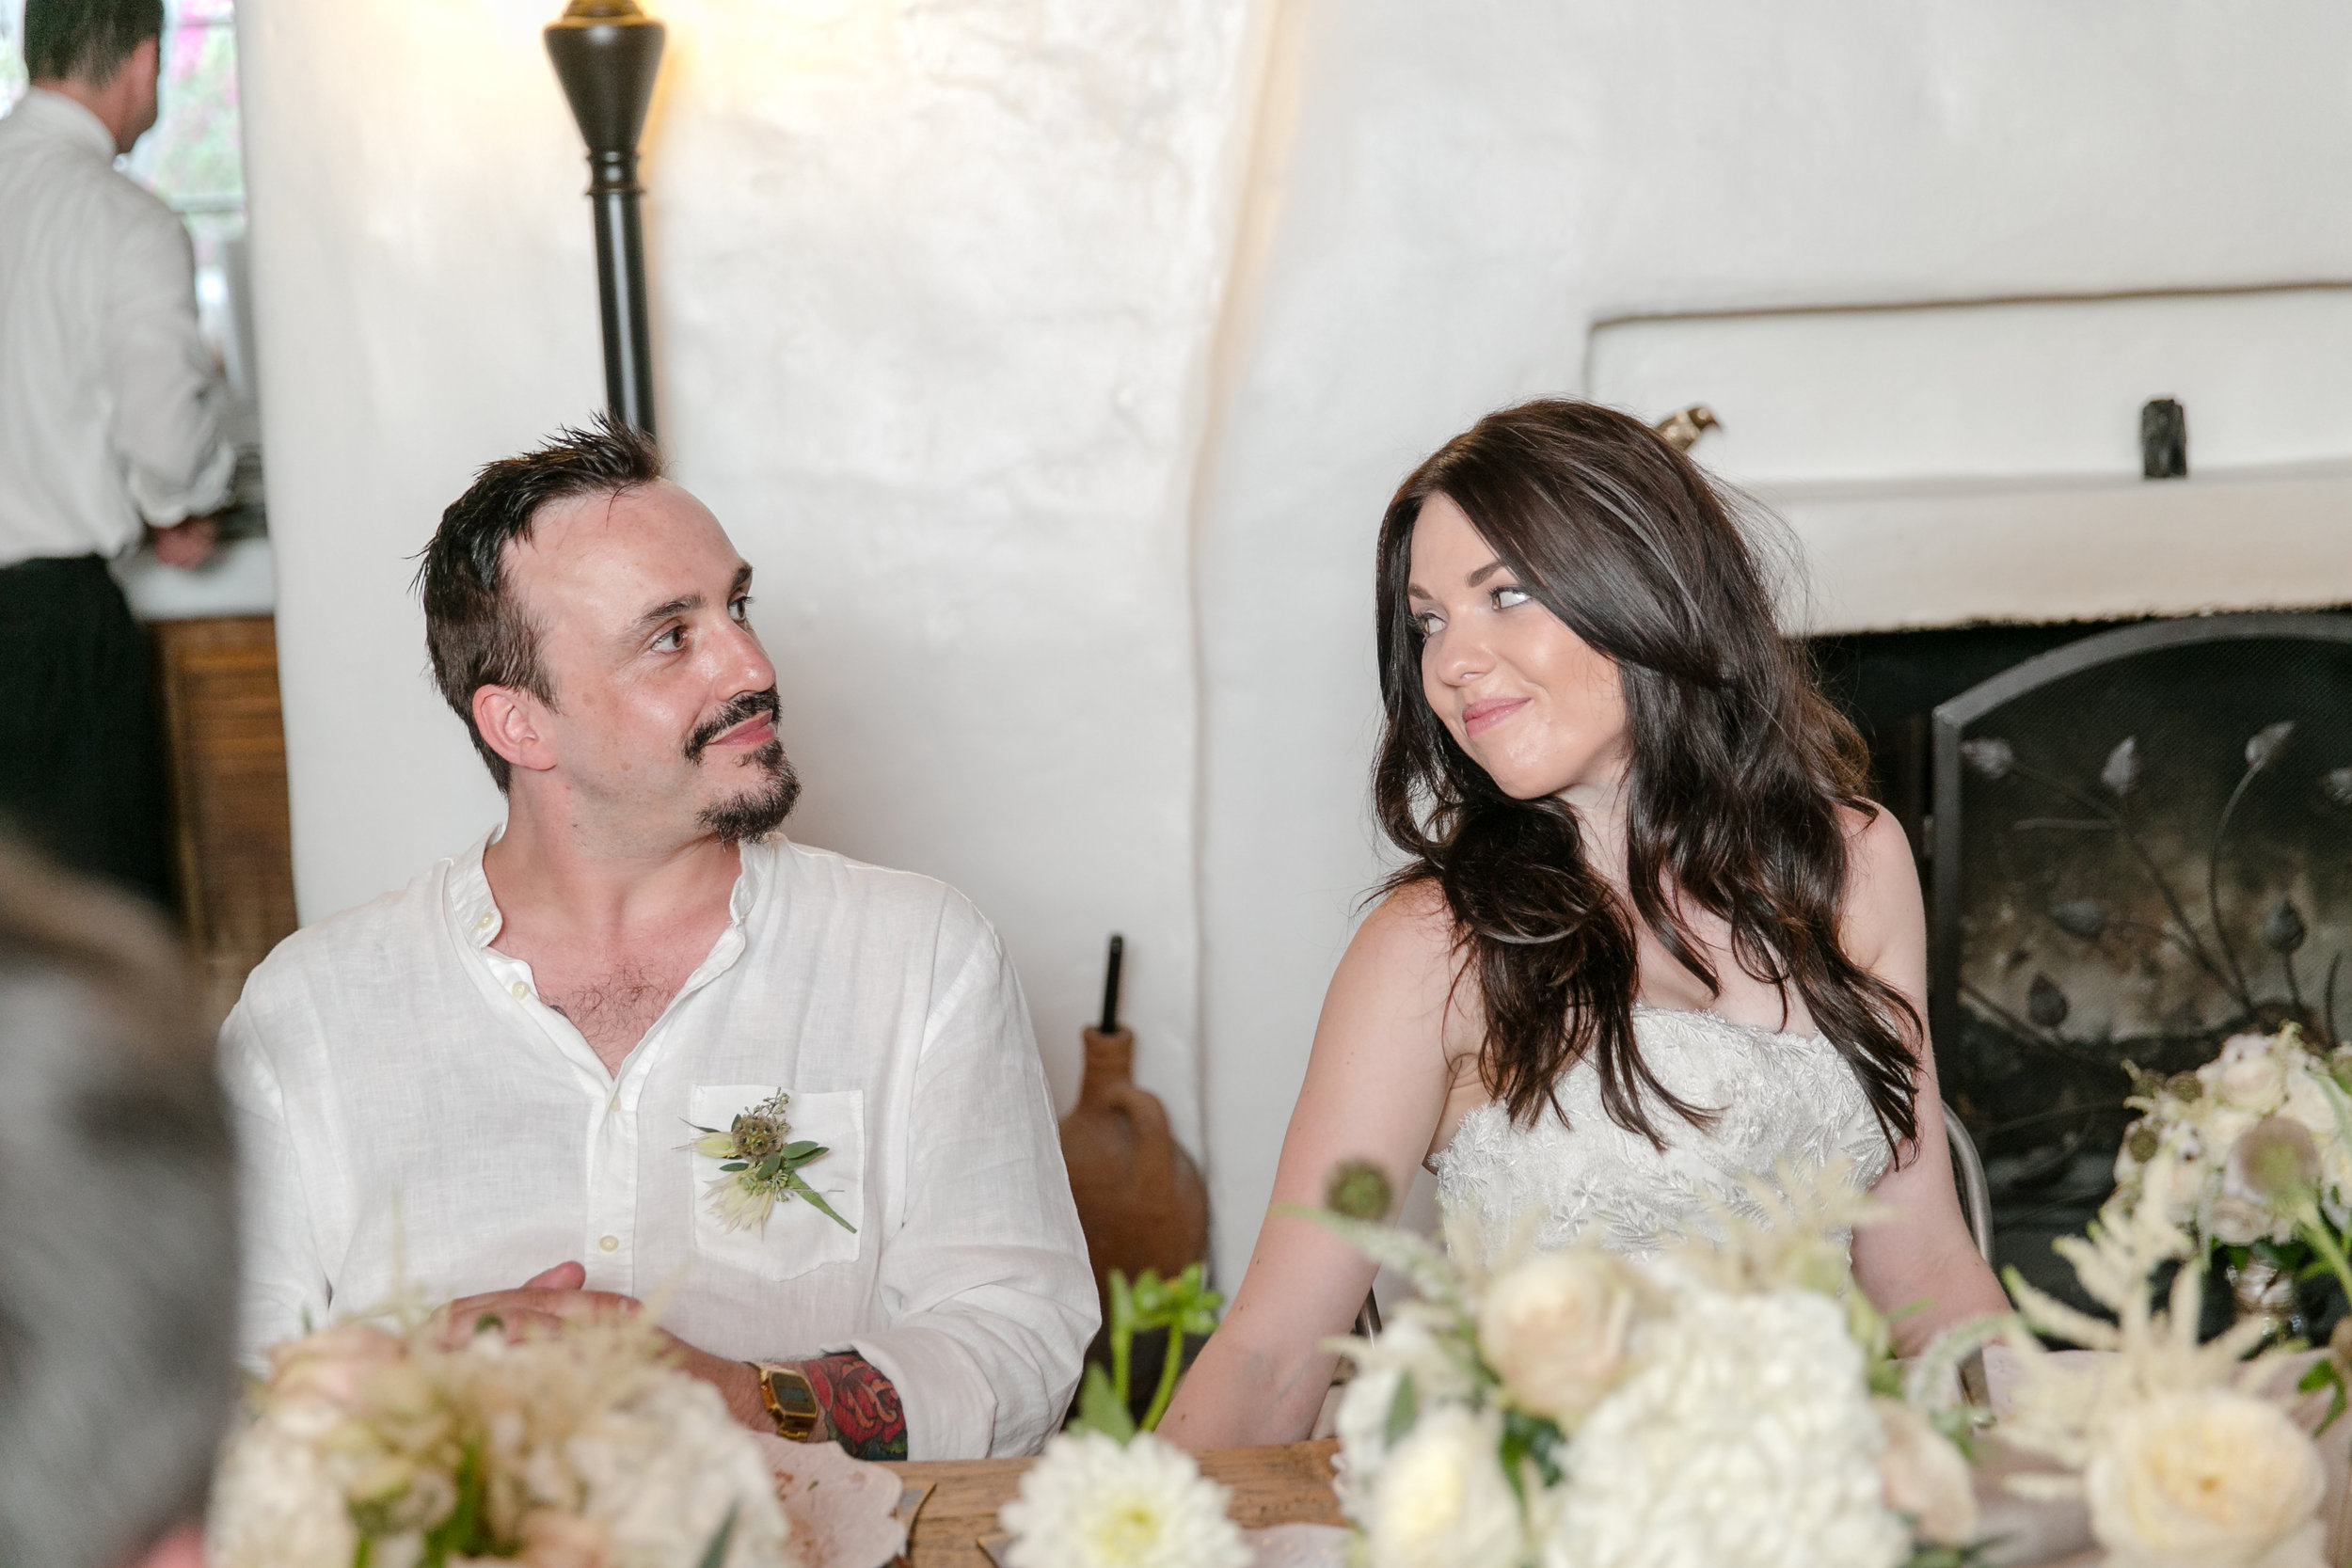 Orchard House Wedding Palm Springs | Michelle Garibay Events